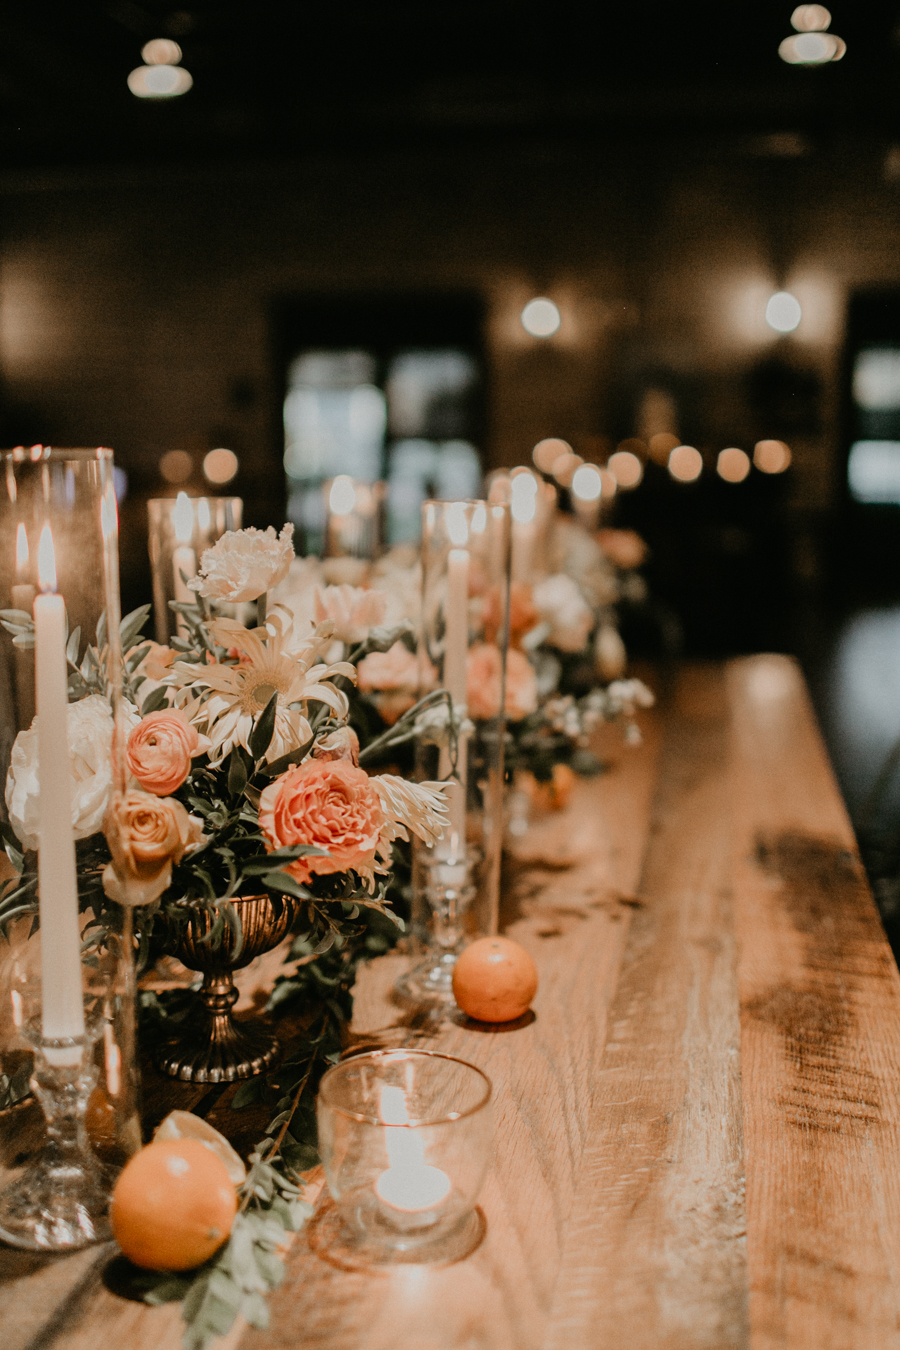 Stephanie And Kent Bailey Tampa Florida Romantic Wedding At Coppertail Brewery in Ybor Florist Fire BHLDN Mis En Place Ibex String Quartet Let Them Eat Cake -102.jpg